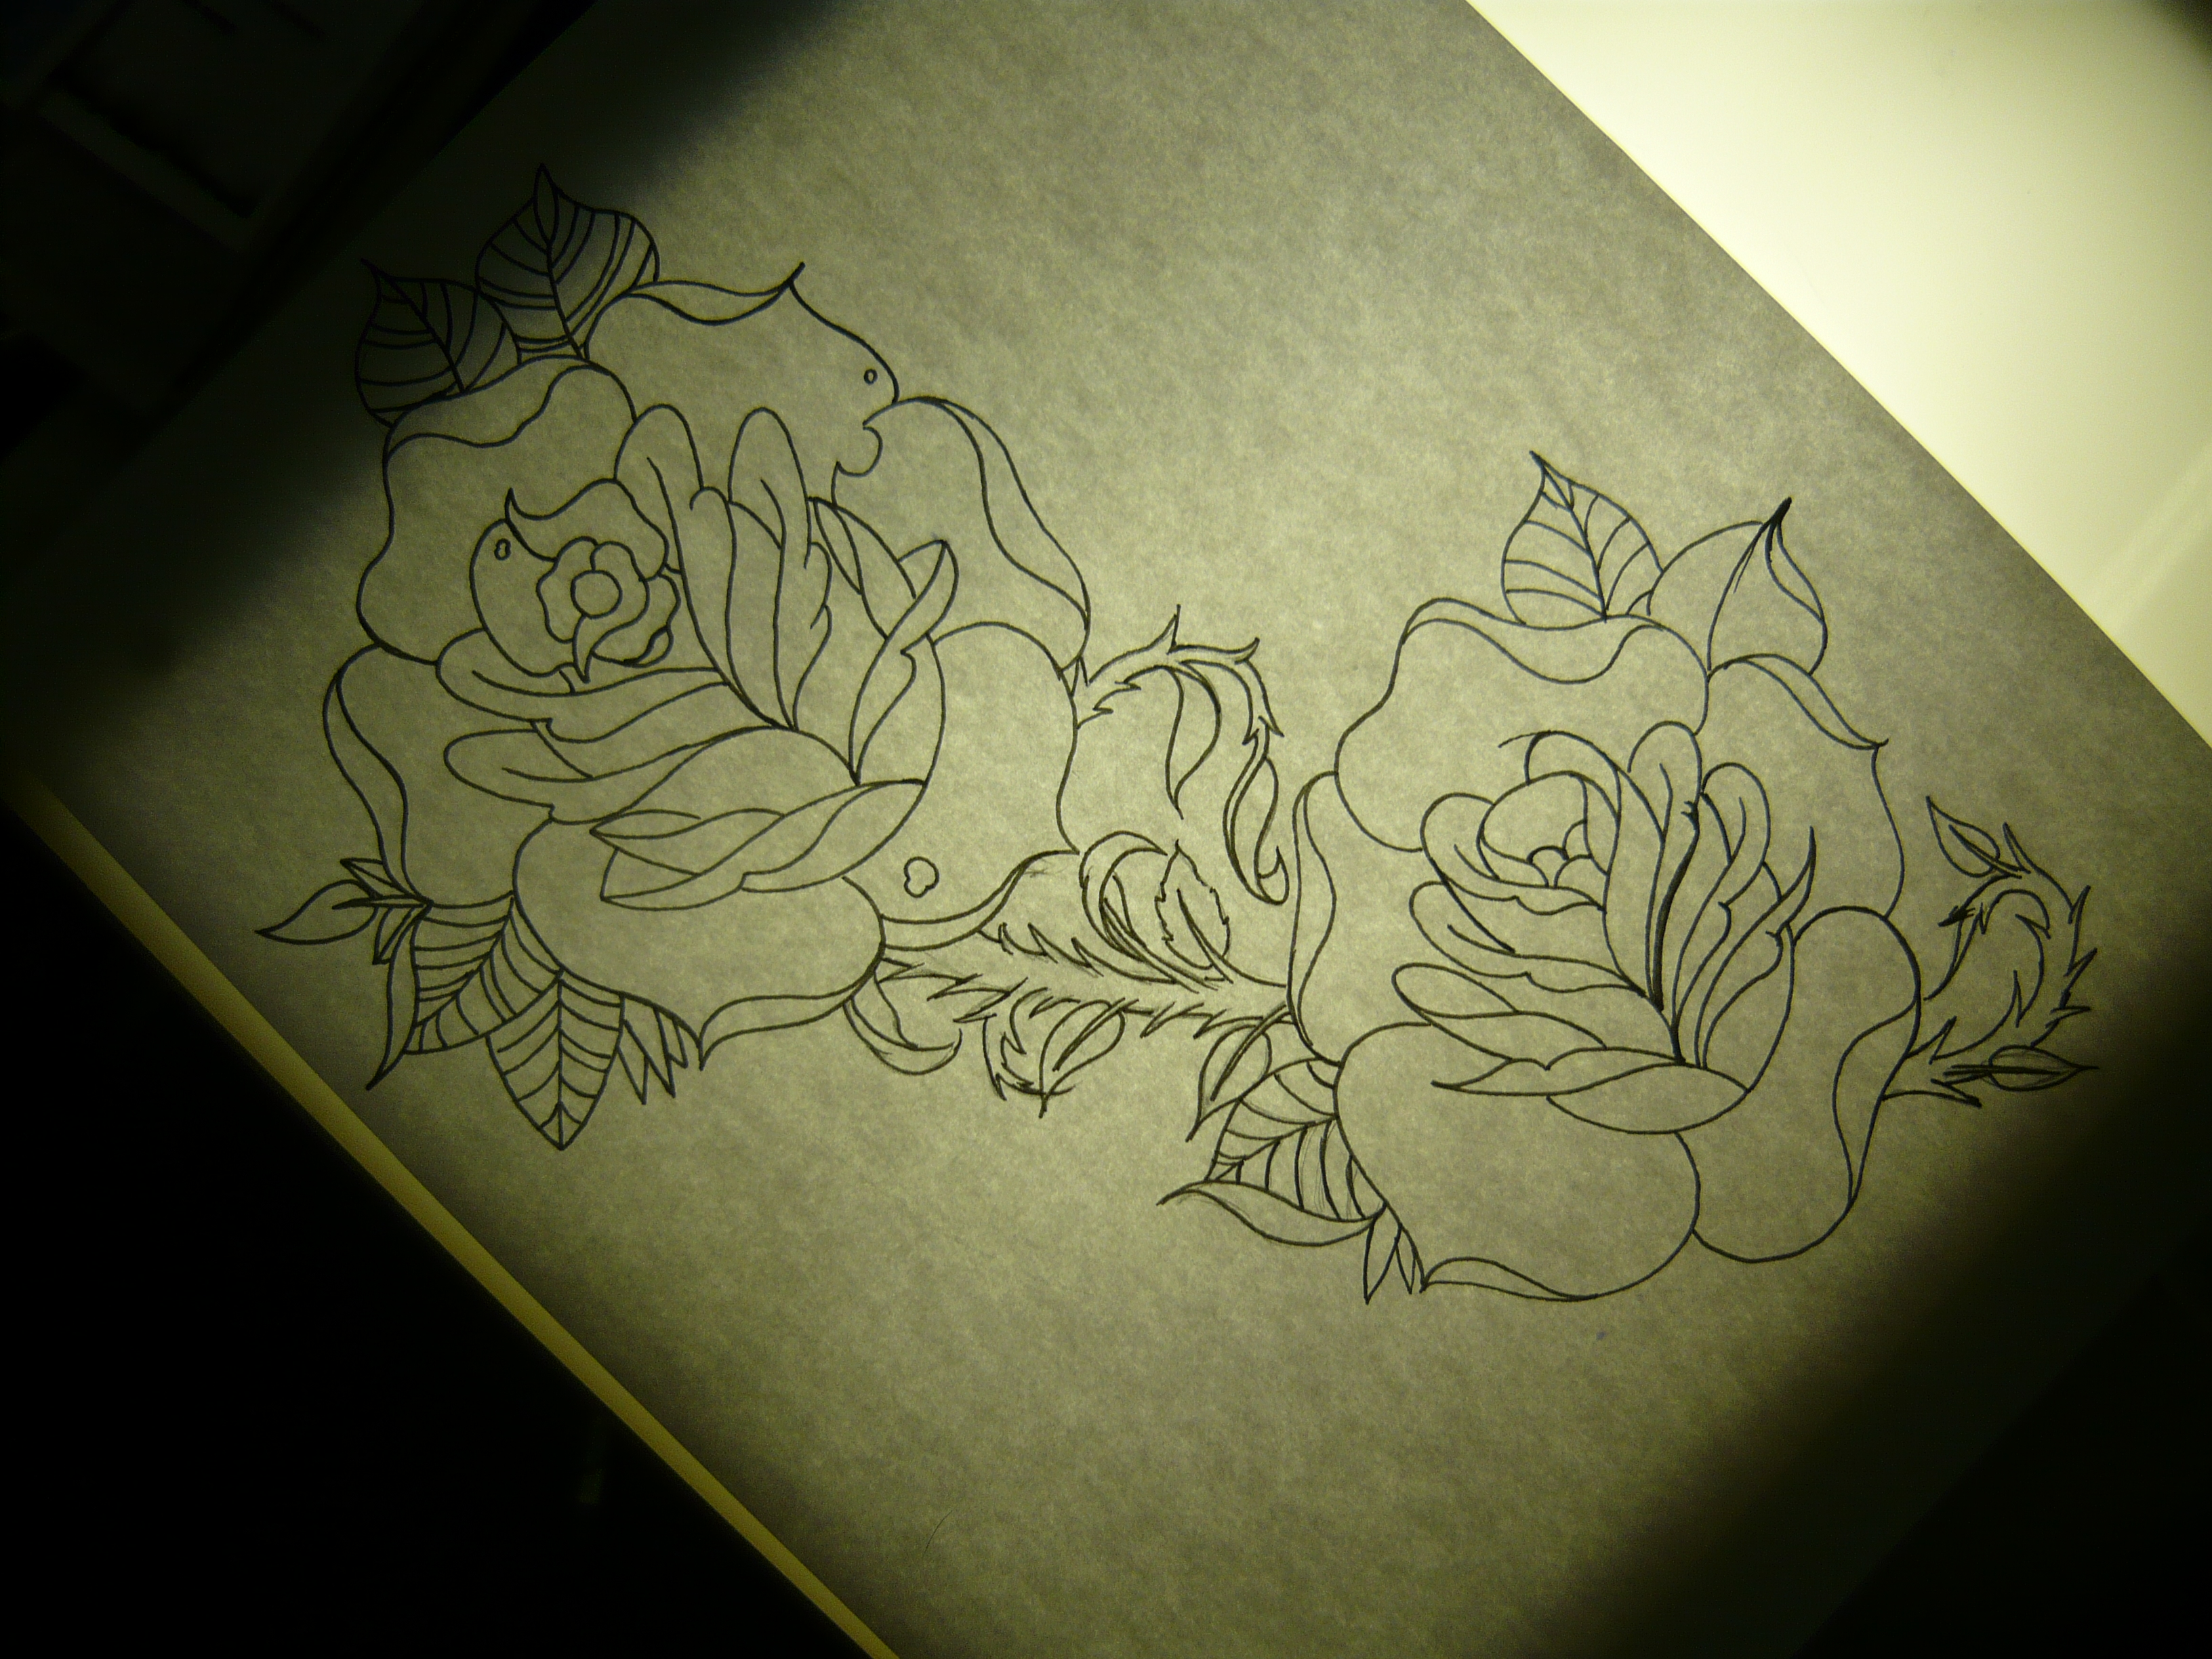 And actually ended up tattooing the sketch I did a mere 7 hours earlier as